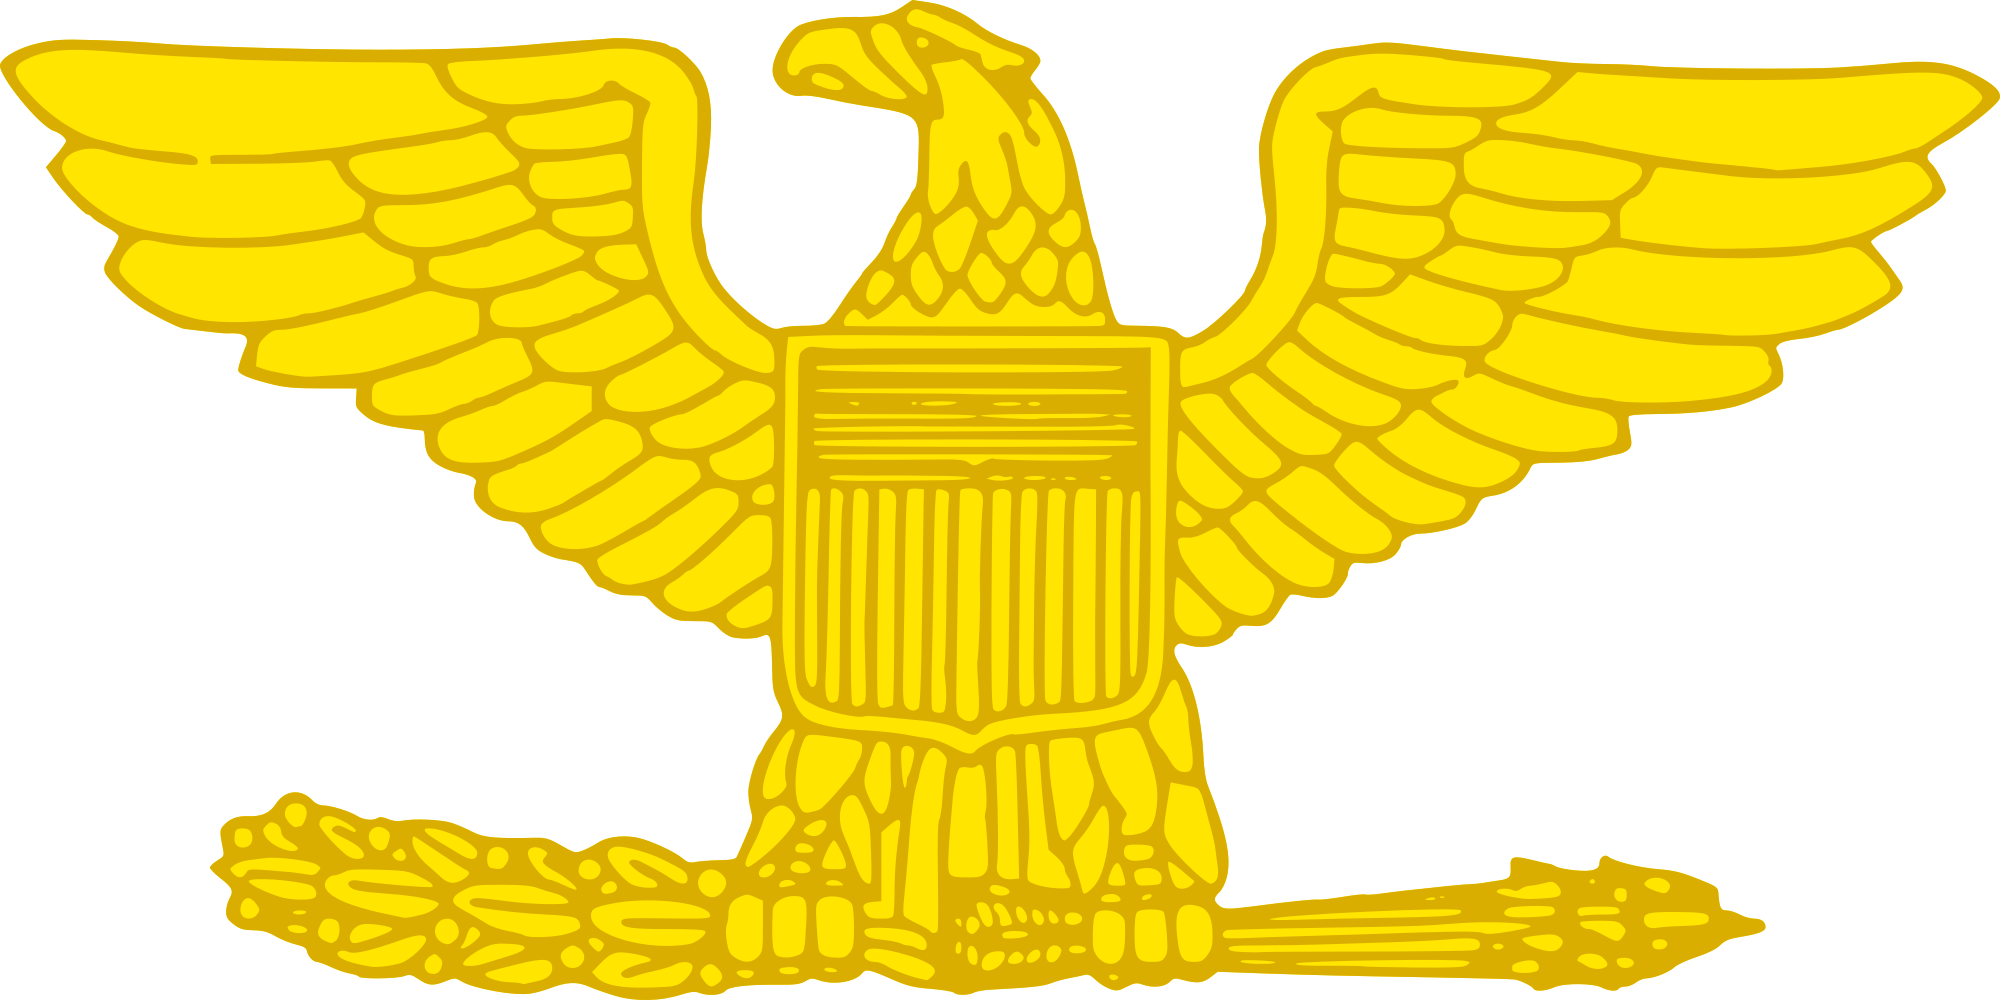 Filecolonel goldg wikimedia commons filecolonel goldg thecheapjerseys Image collections